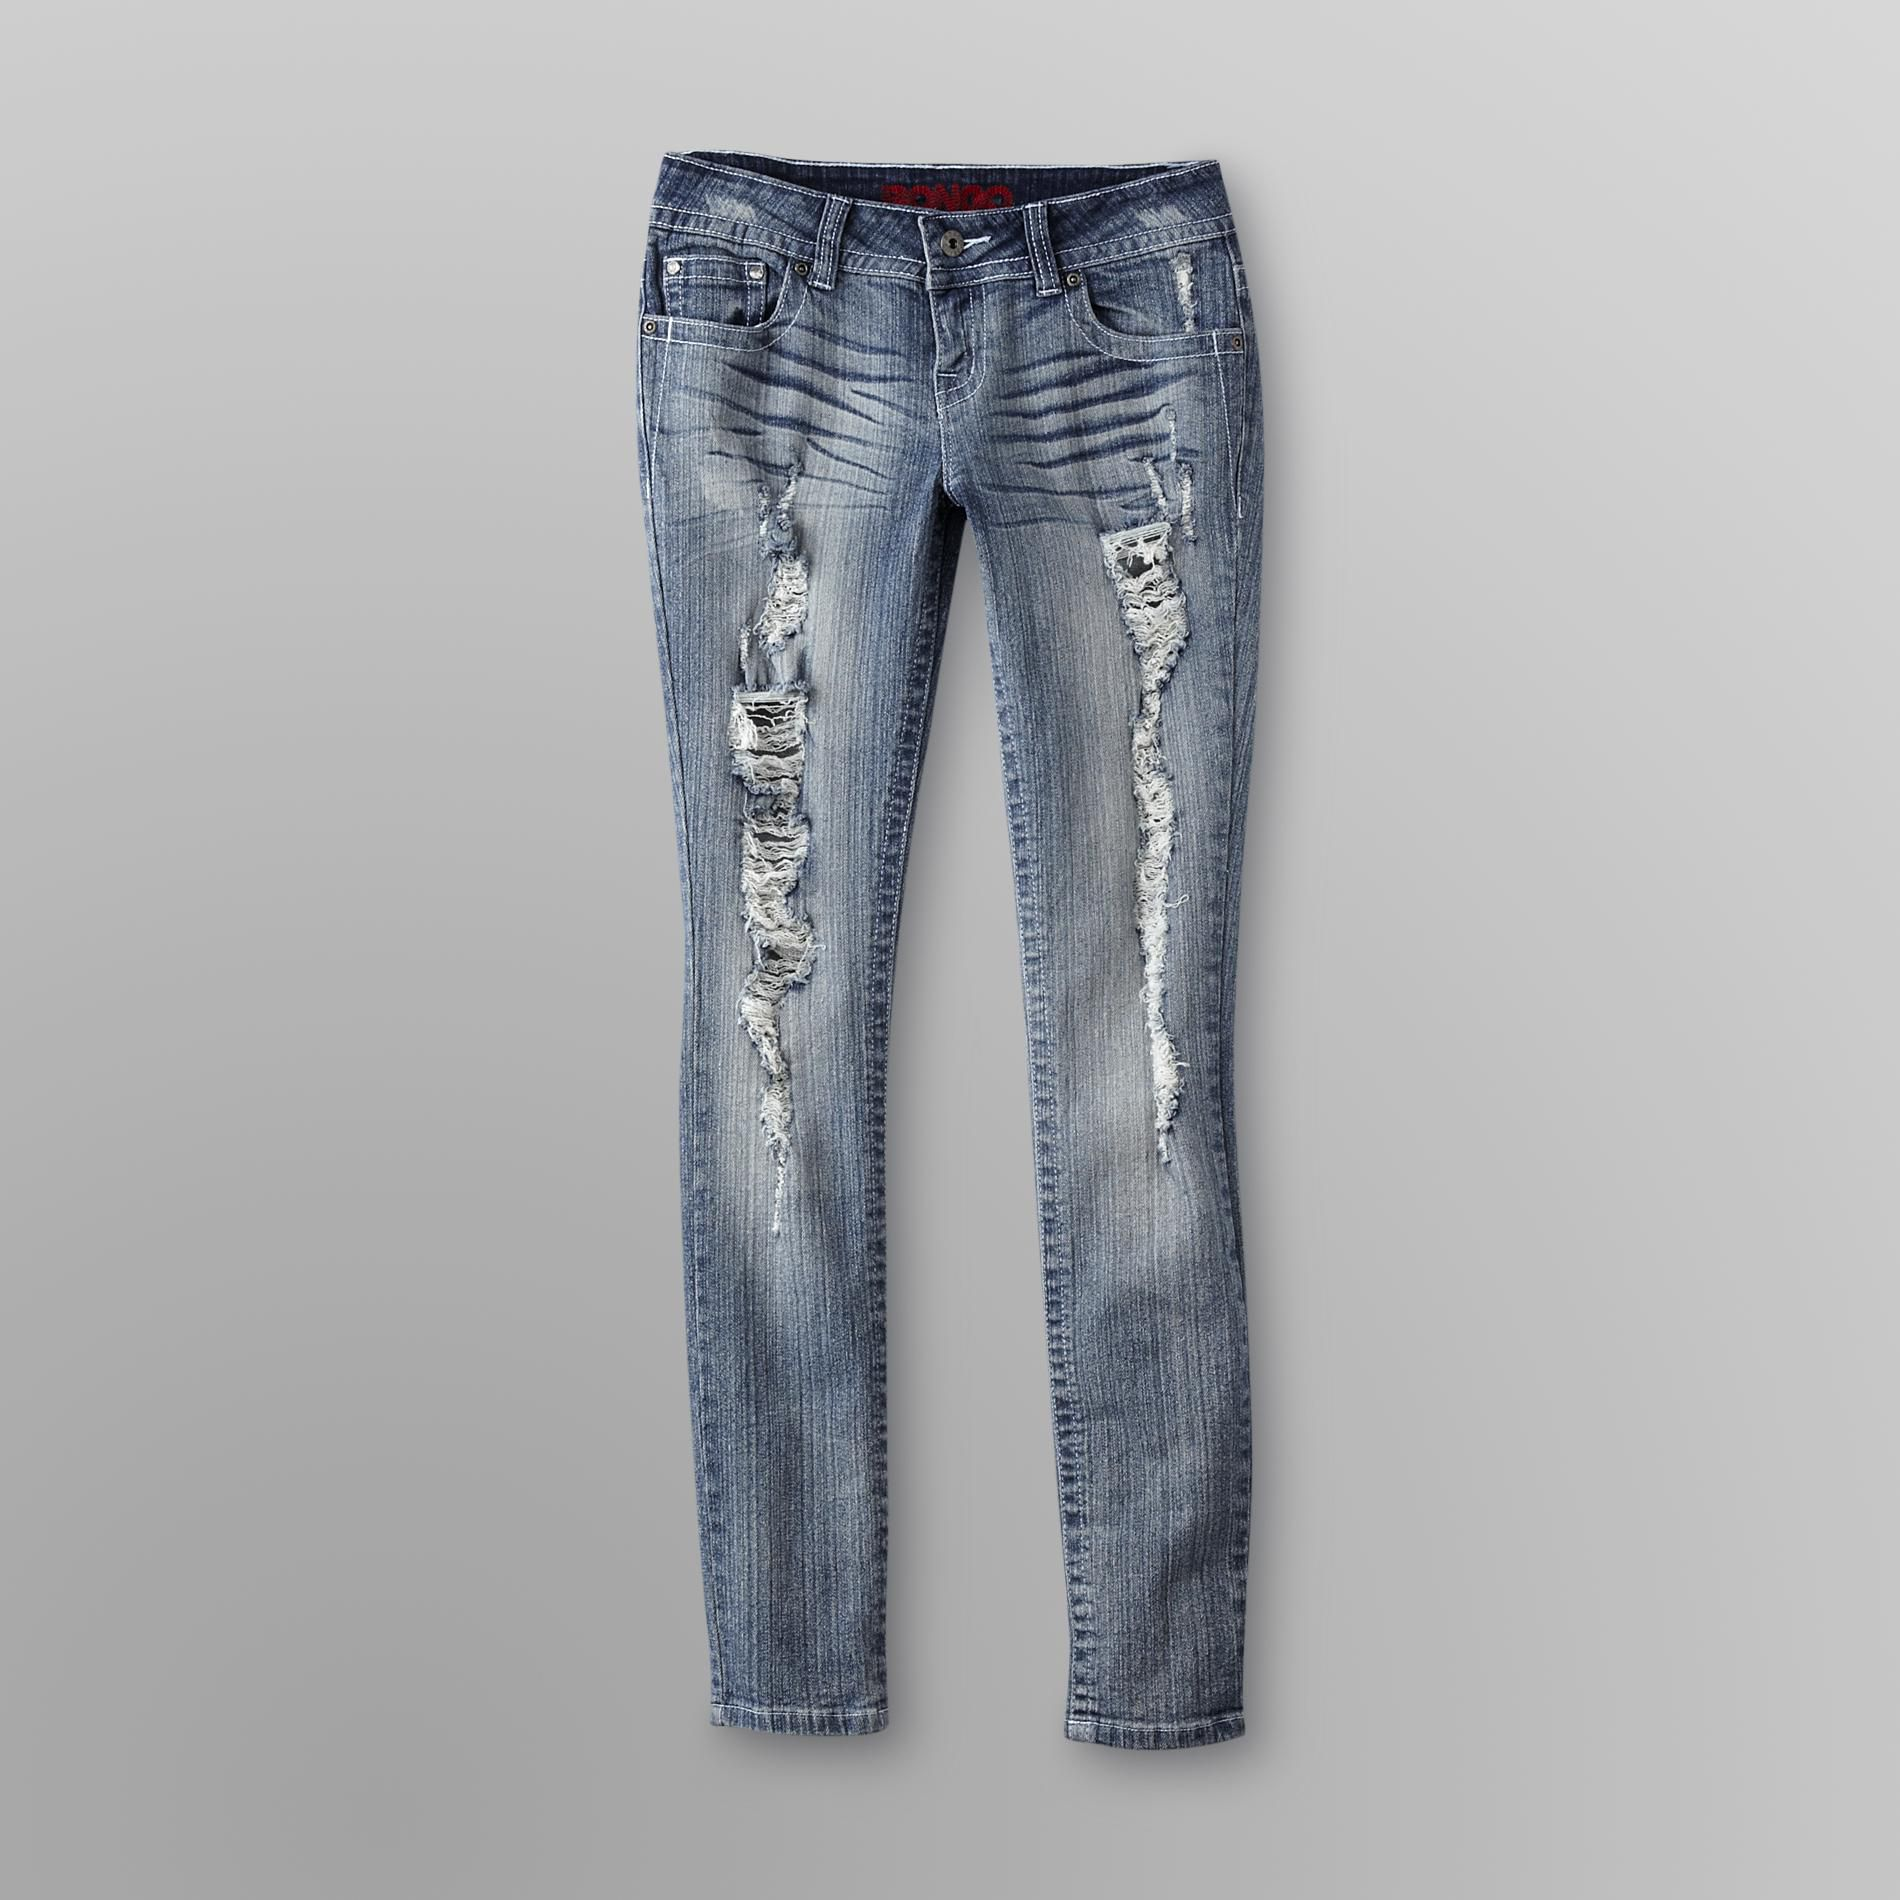 Bongo Junior's Bling Pocket Destructed Skinny Jeans at Sears.com